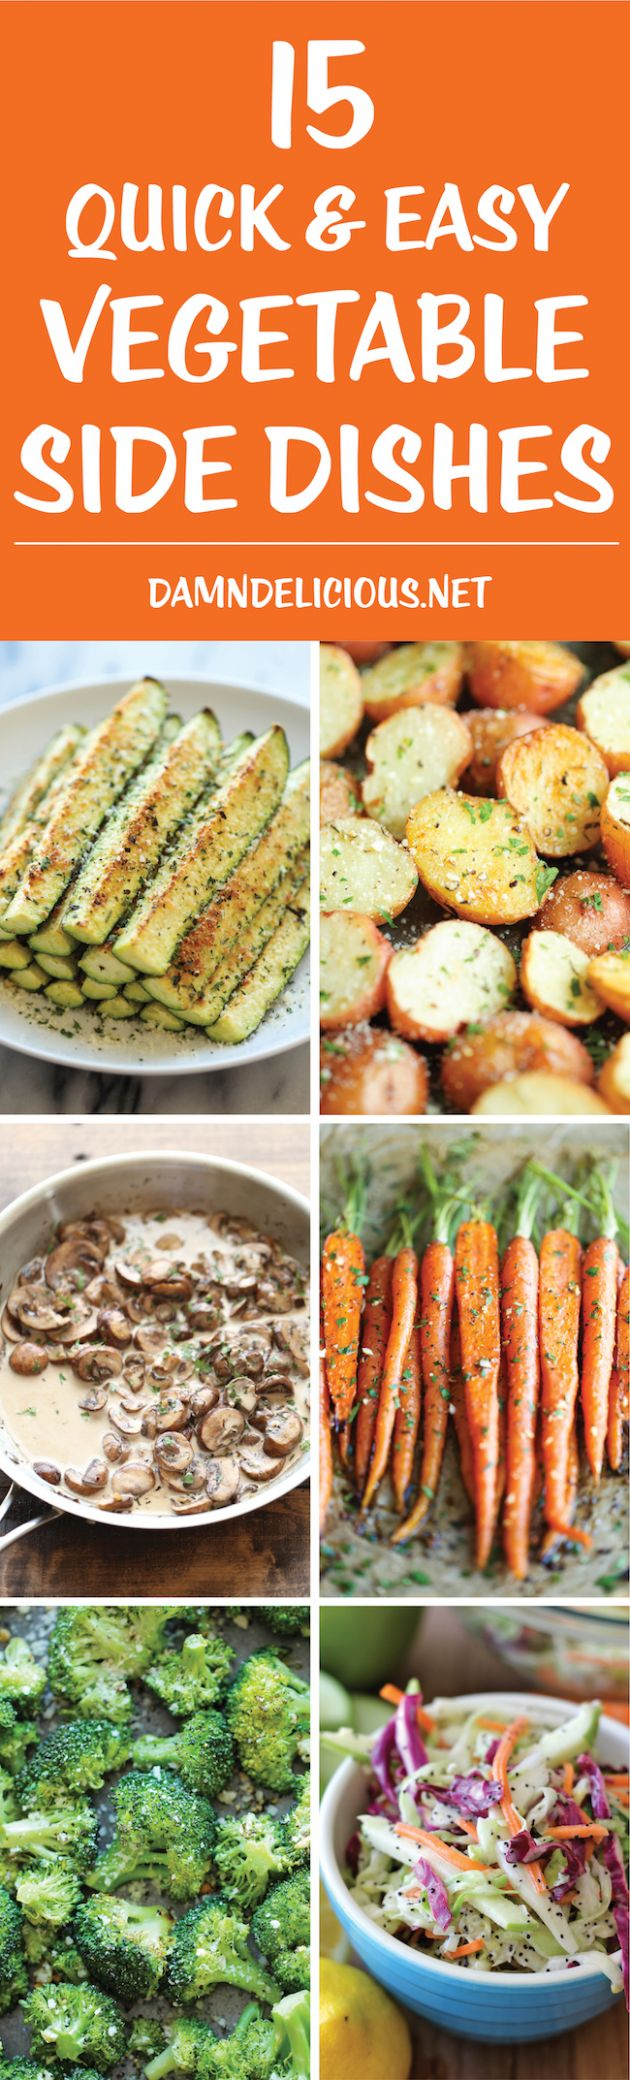 10 Quick and Easy Vegetable Side Dishes - Damn Delicious - Vegetable Recipes That Taste Good